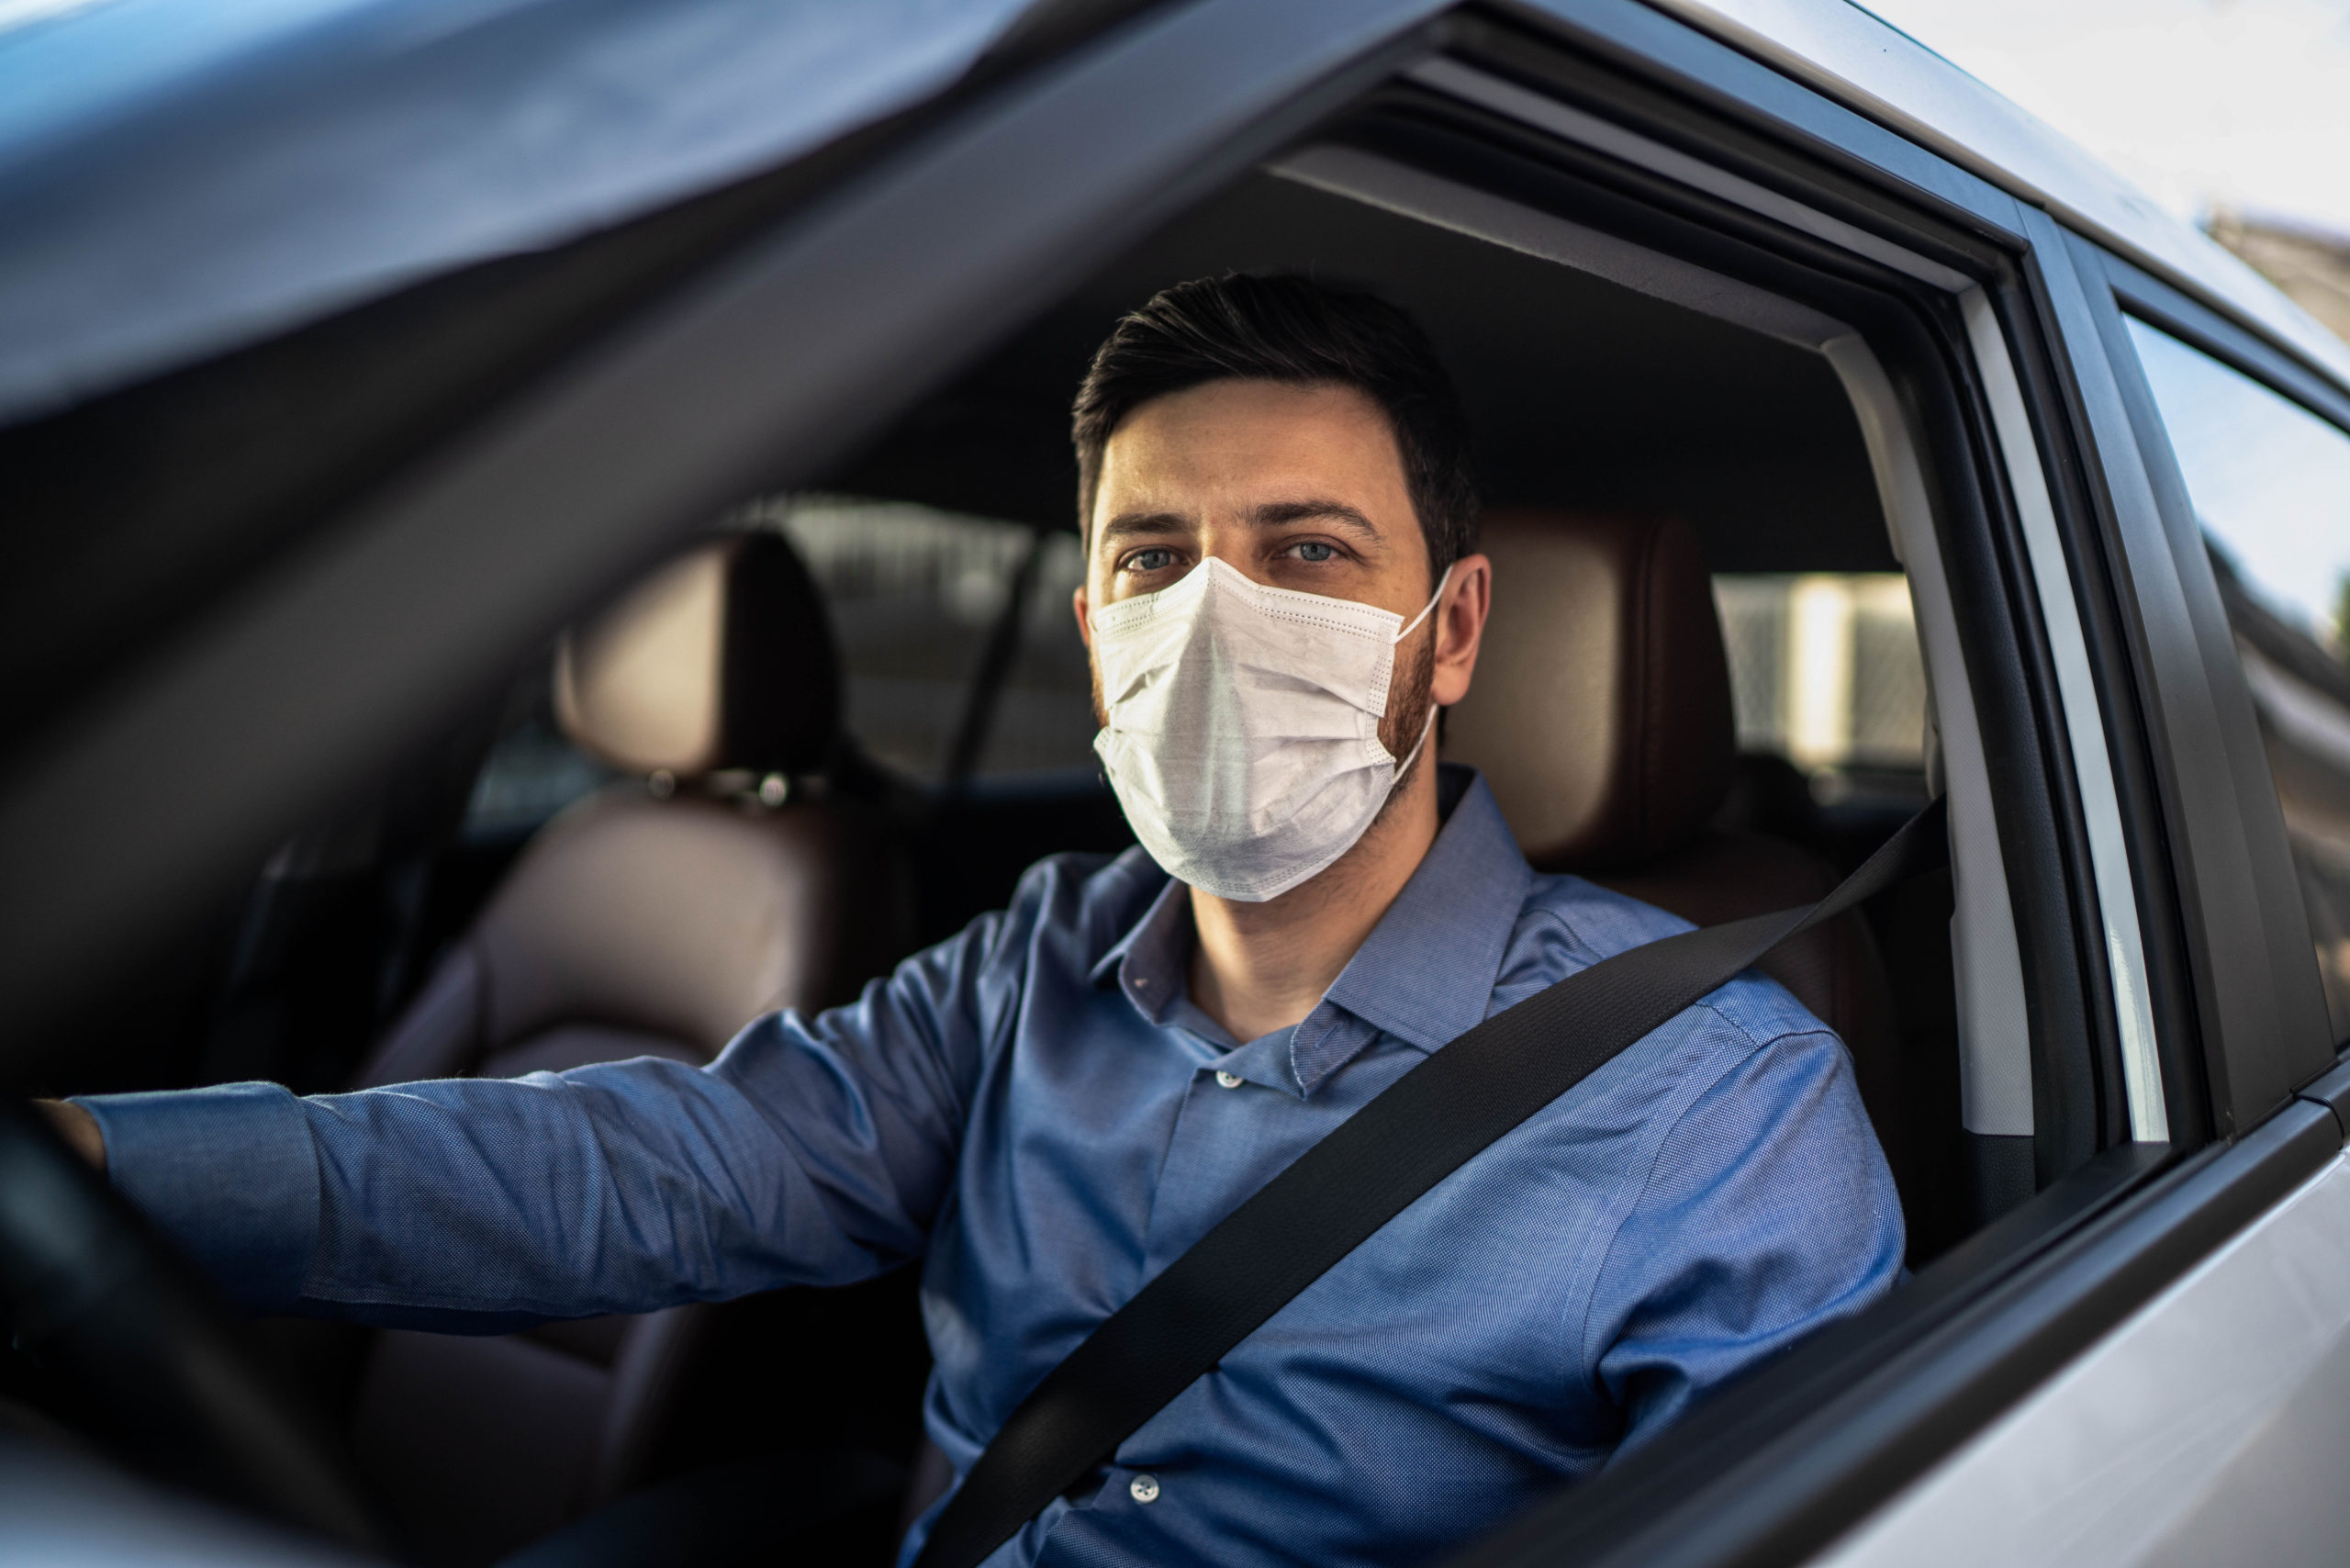 Slammed for wearing a face mask in car alone